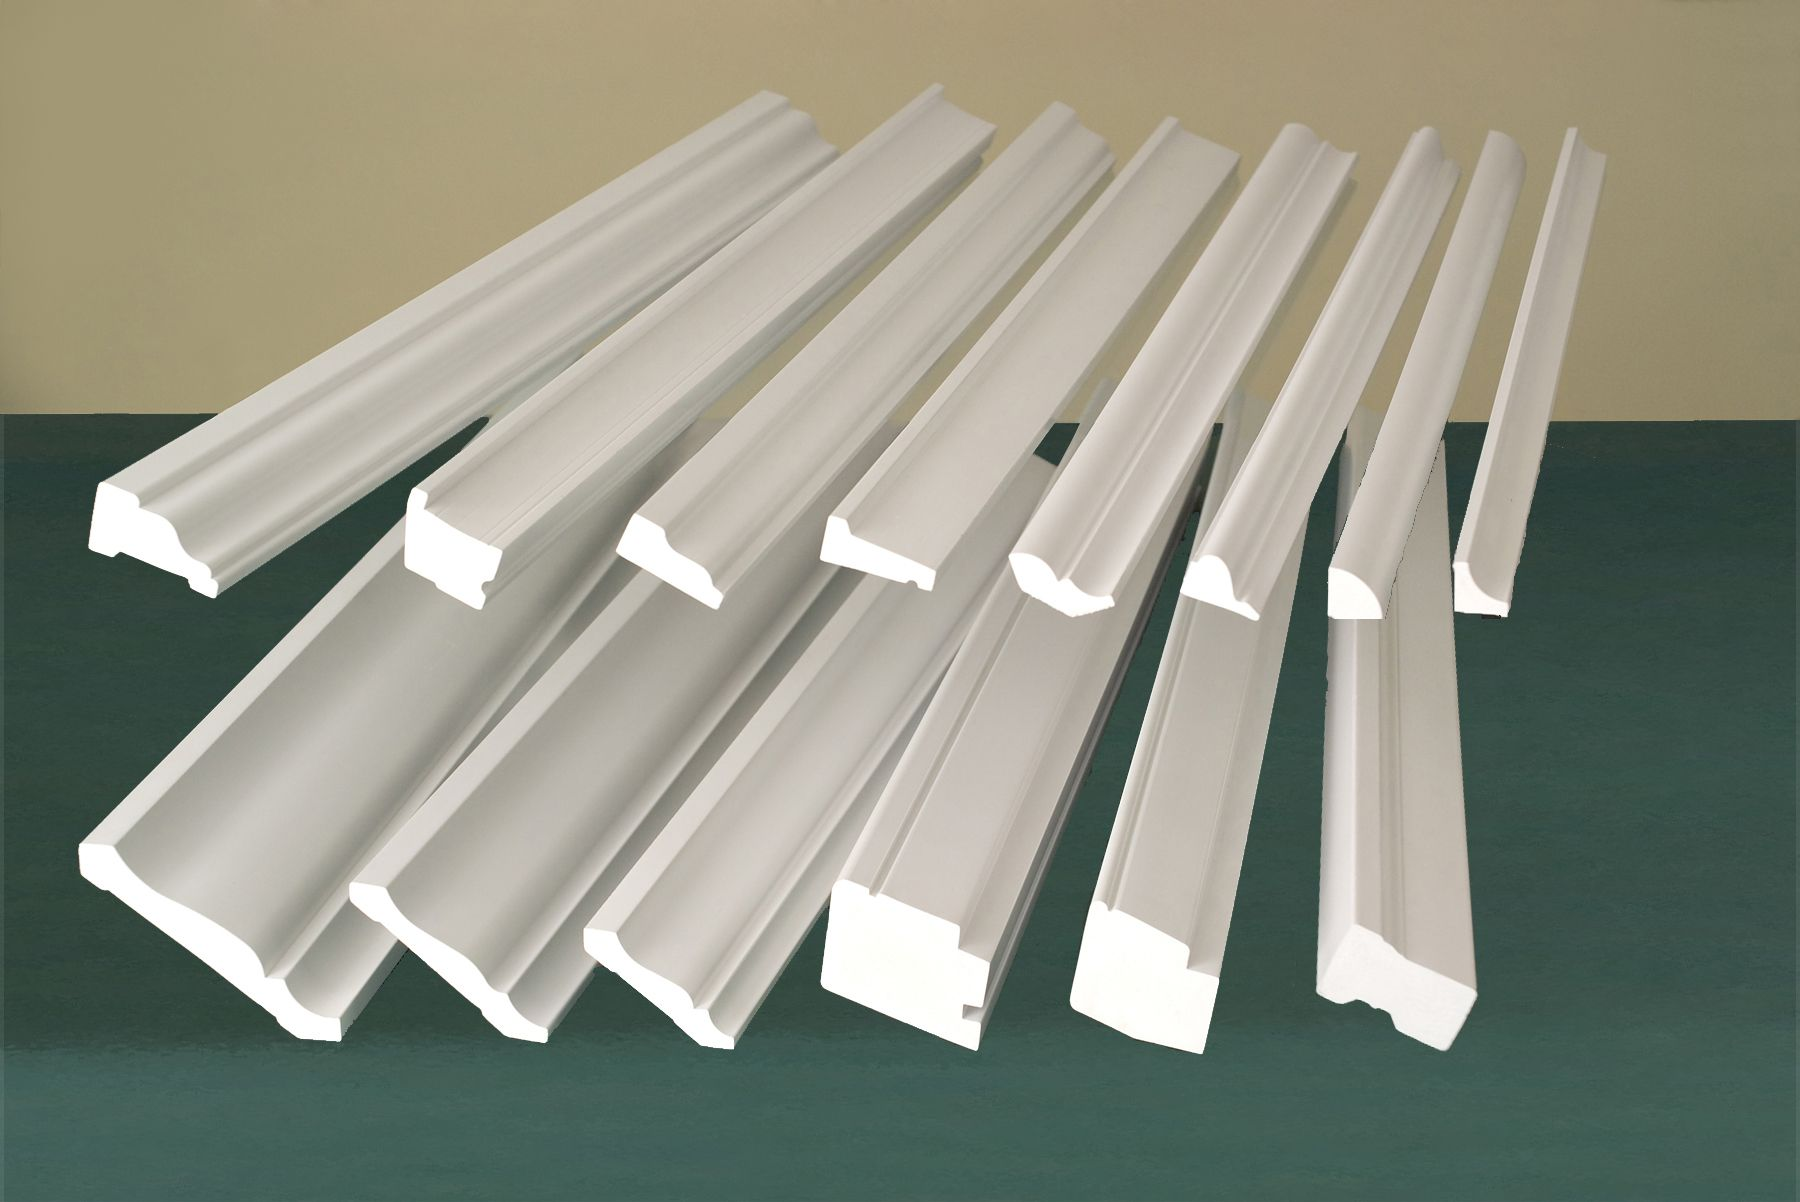 Home Depot Composite Trim Exterior Pvc Trim Patio Pvc Trim House Siding Wood Trim